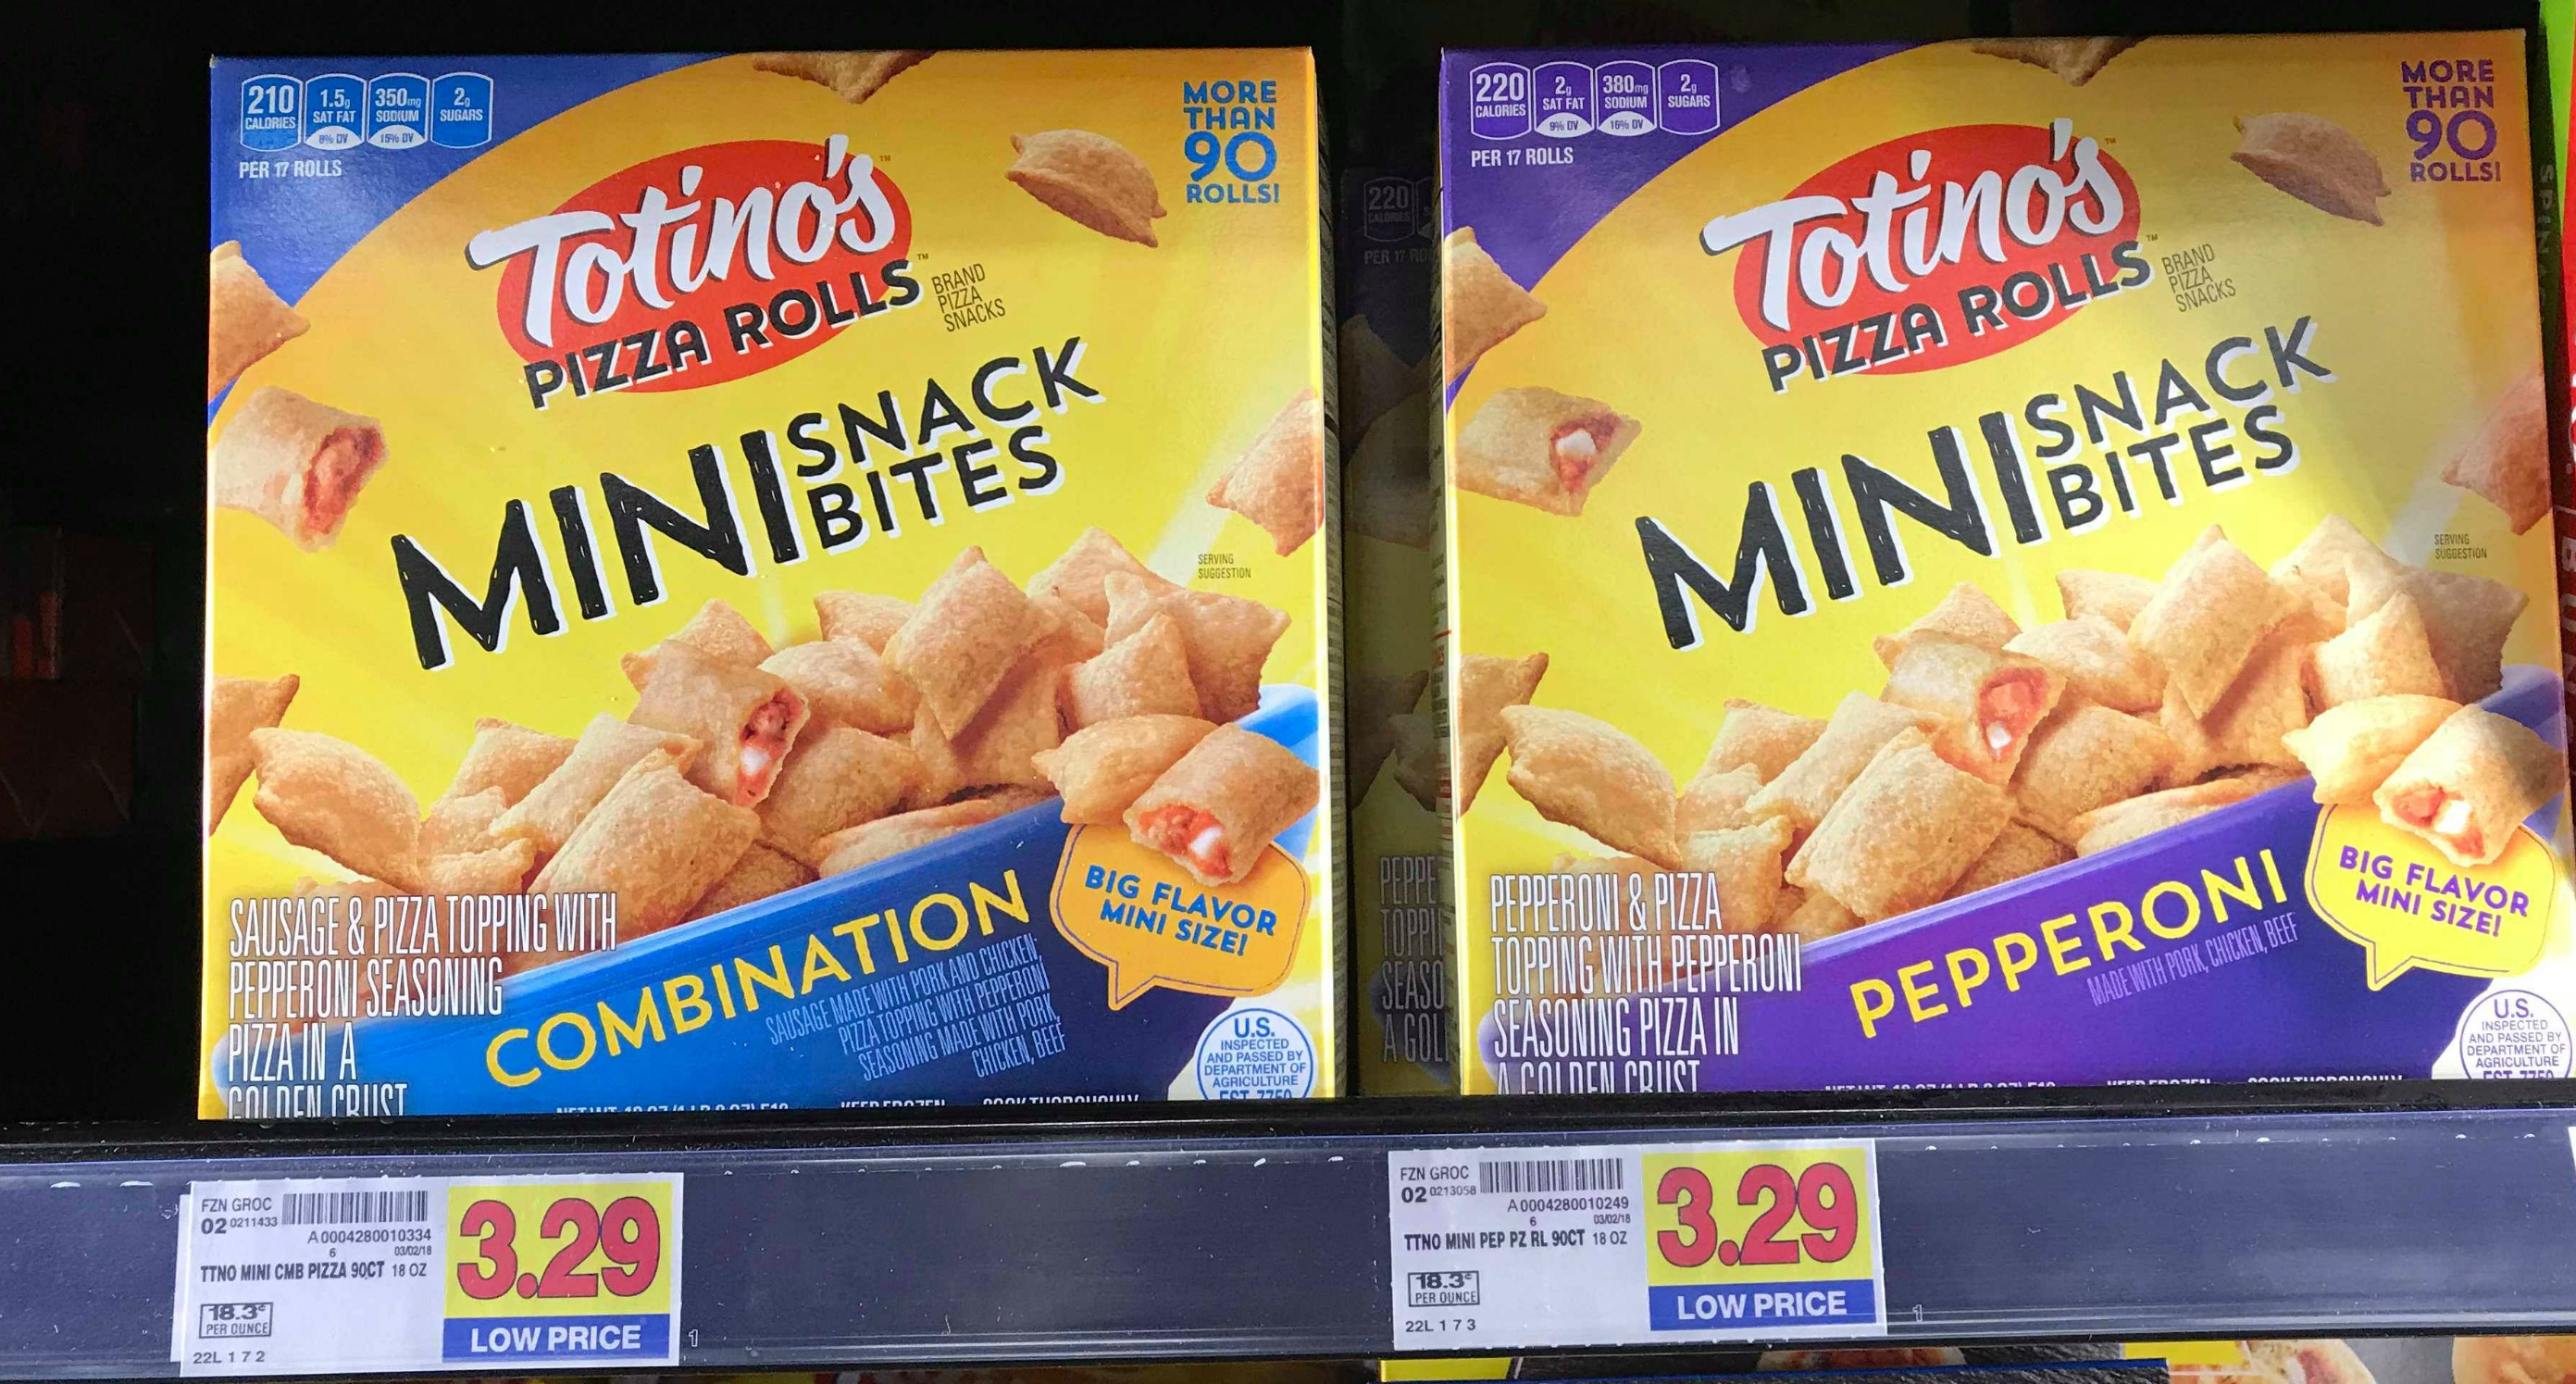 totinos market This statistic shows the retail sales of totino's pizza rolls in the united states in 2012 and 2015 according to the report, us retail sales of totino's pizza amounted to approximately 463.